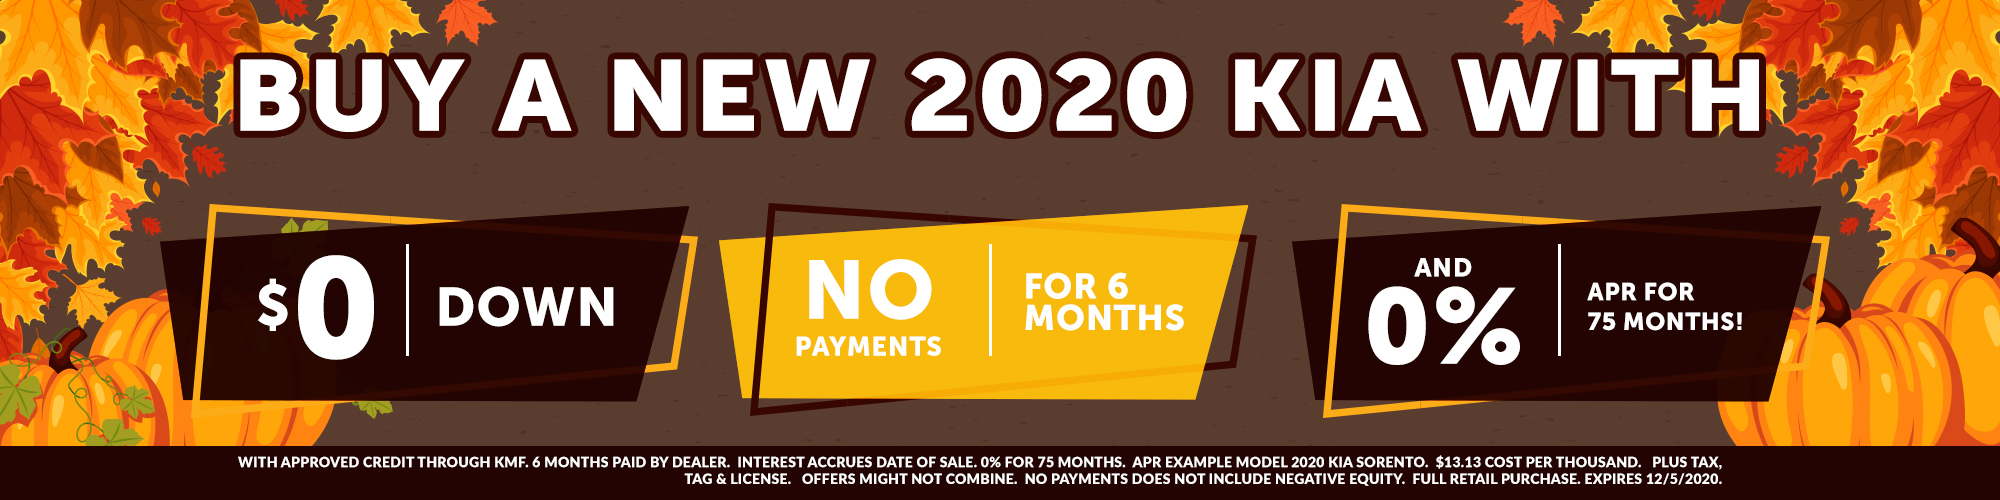 BUY A NEW 2020 KIA WITH NO PAYMENTS UNTIL 2021, 0% APR INTEREST UP TO 84 MONTHS, PUT NO MONEY DOWN!